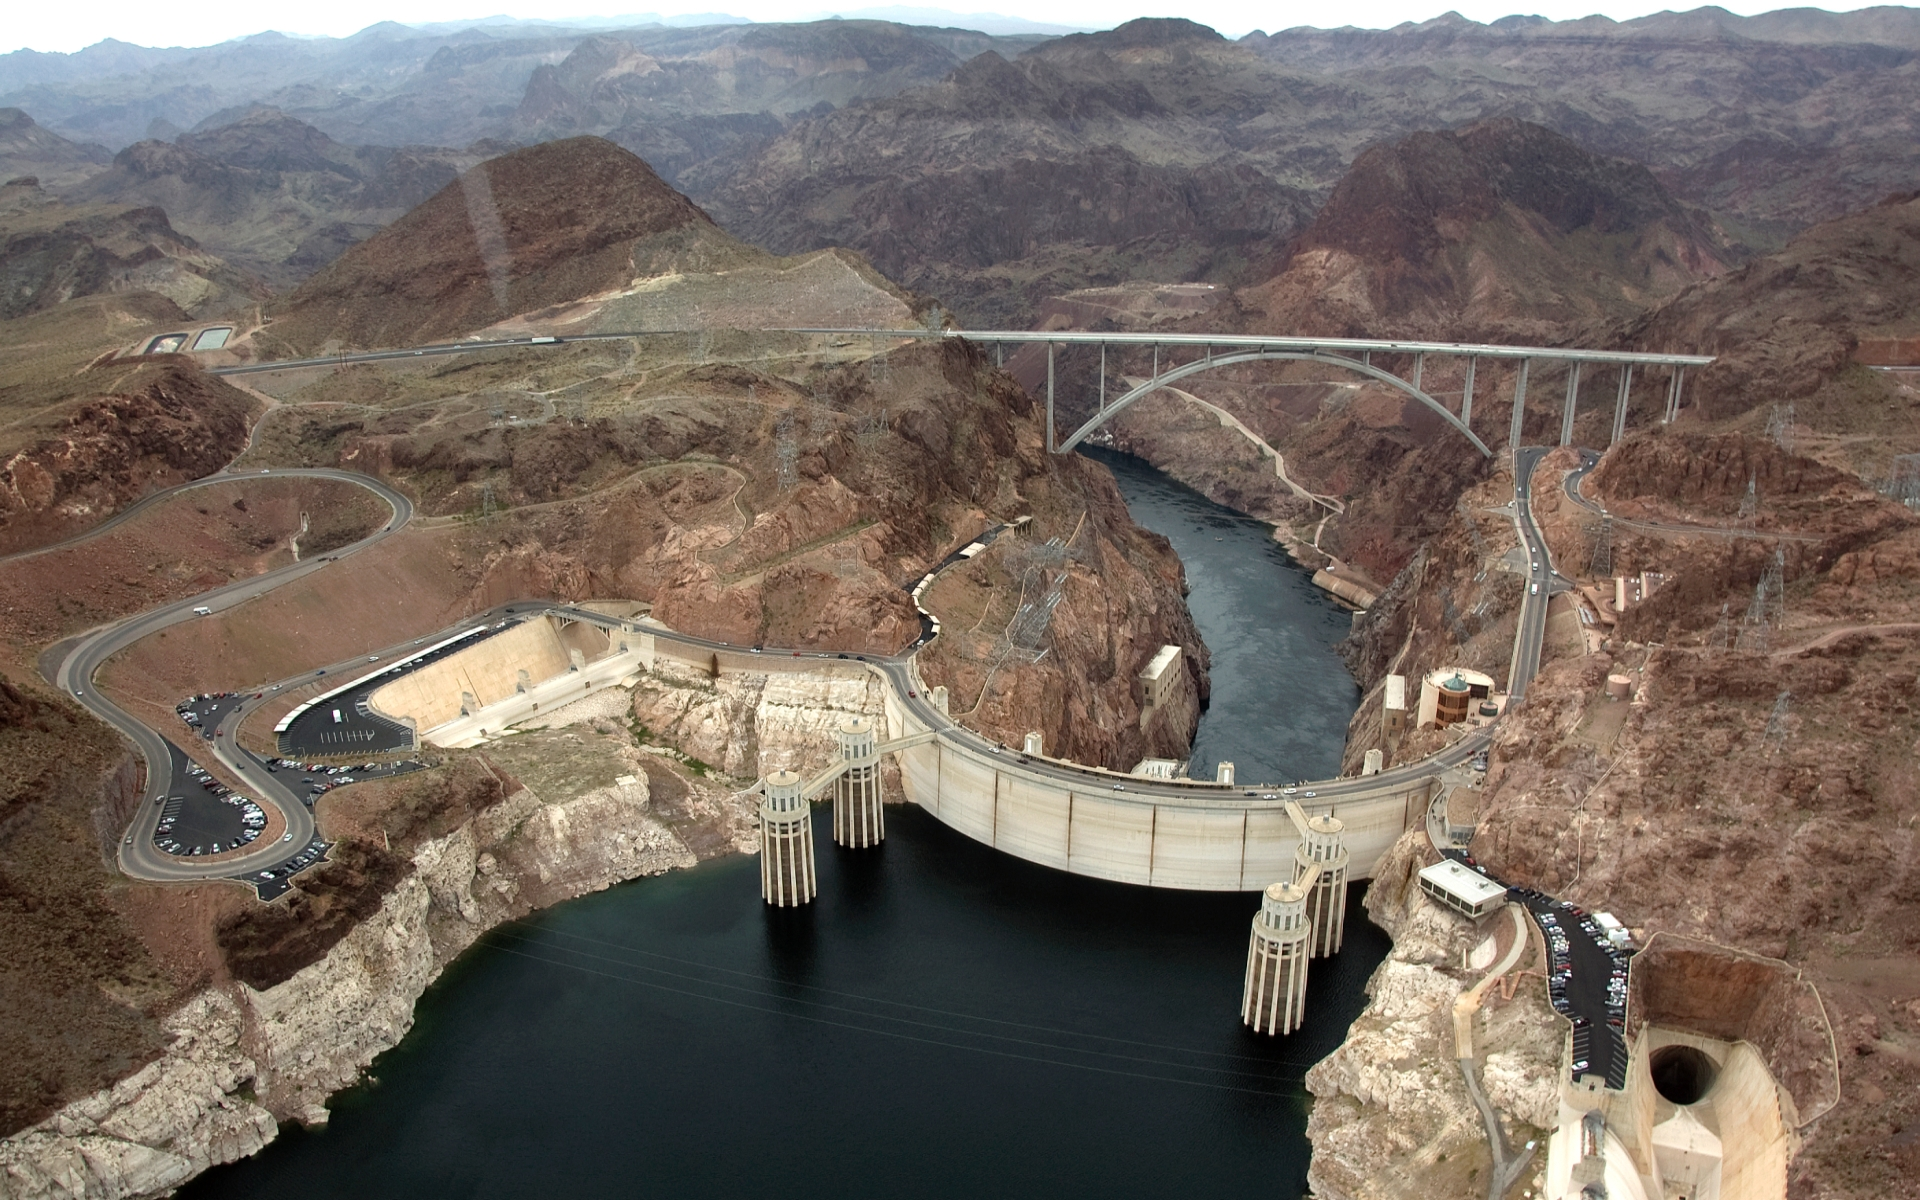 Hoover Dam HD Wallpaper Background Image 1920x1200 ID553442 1920x1200